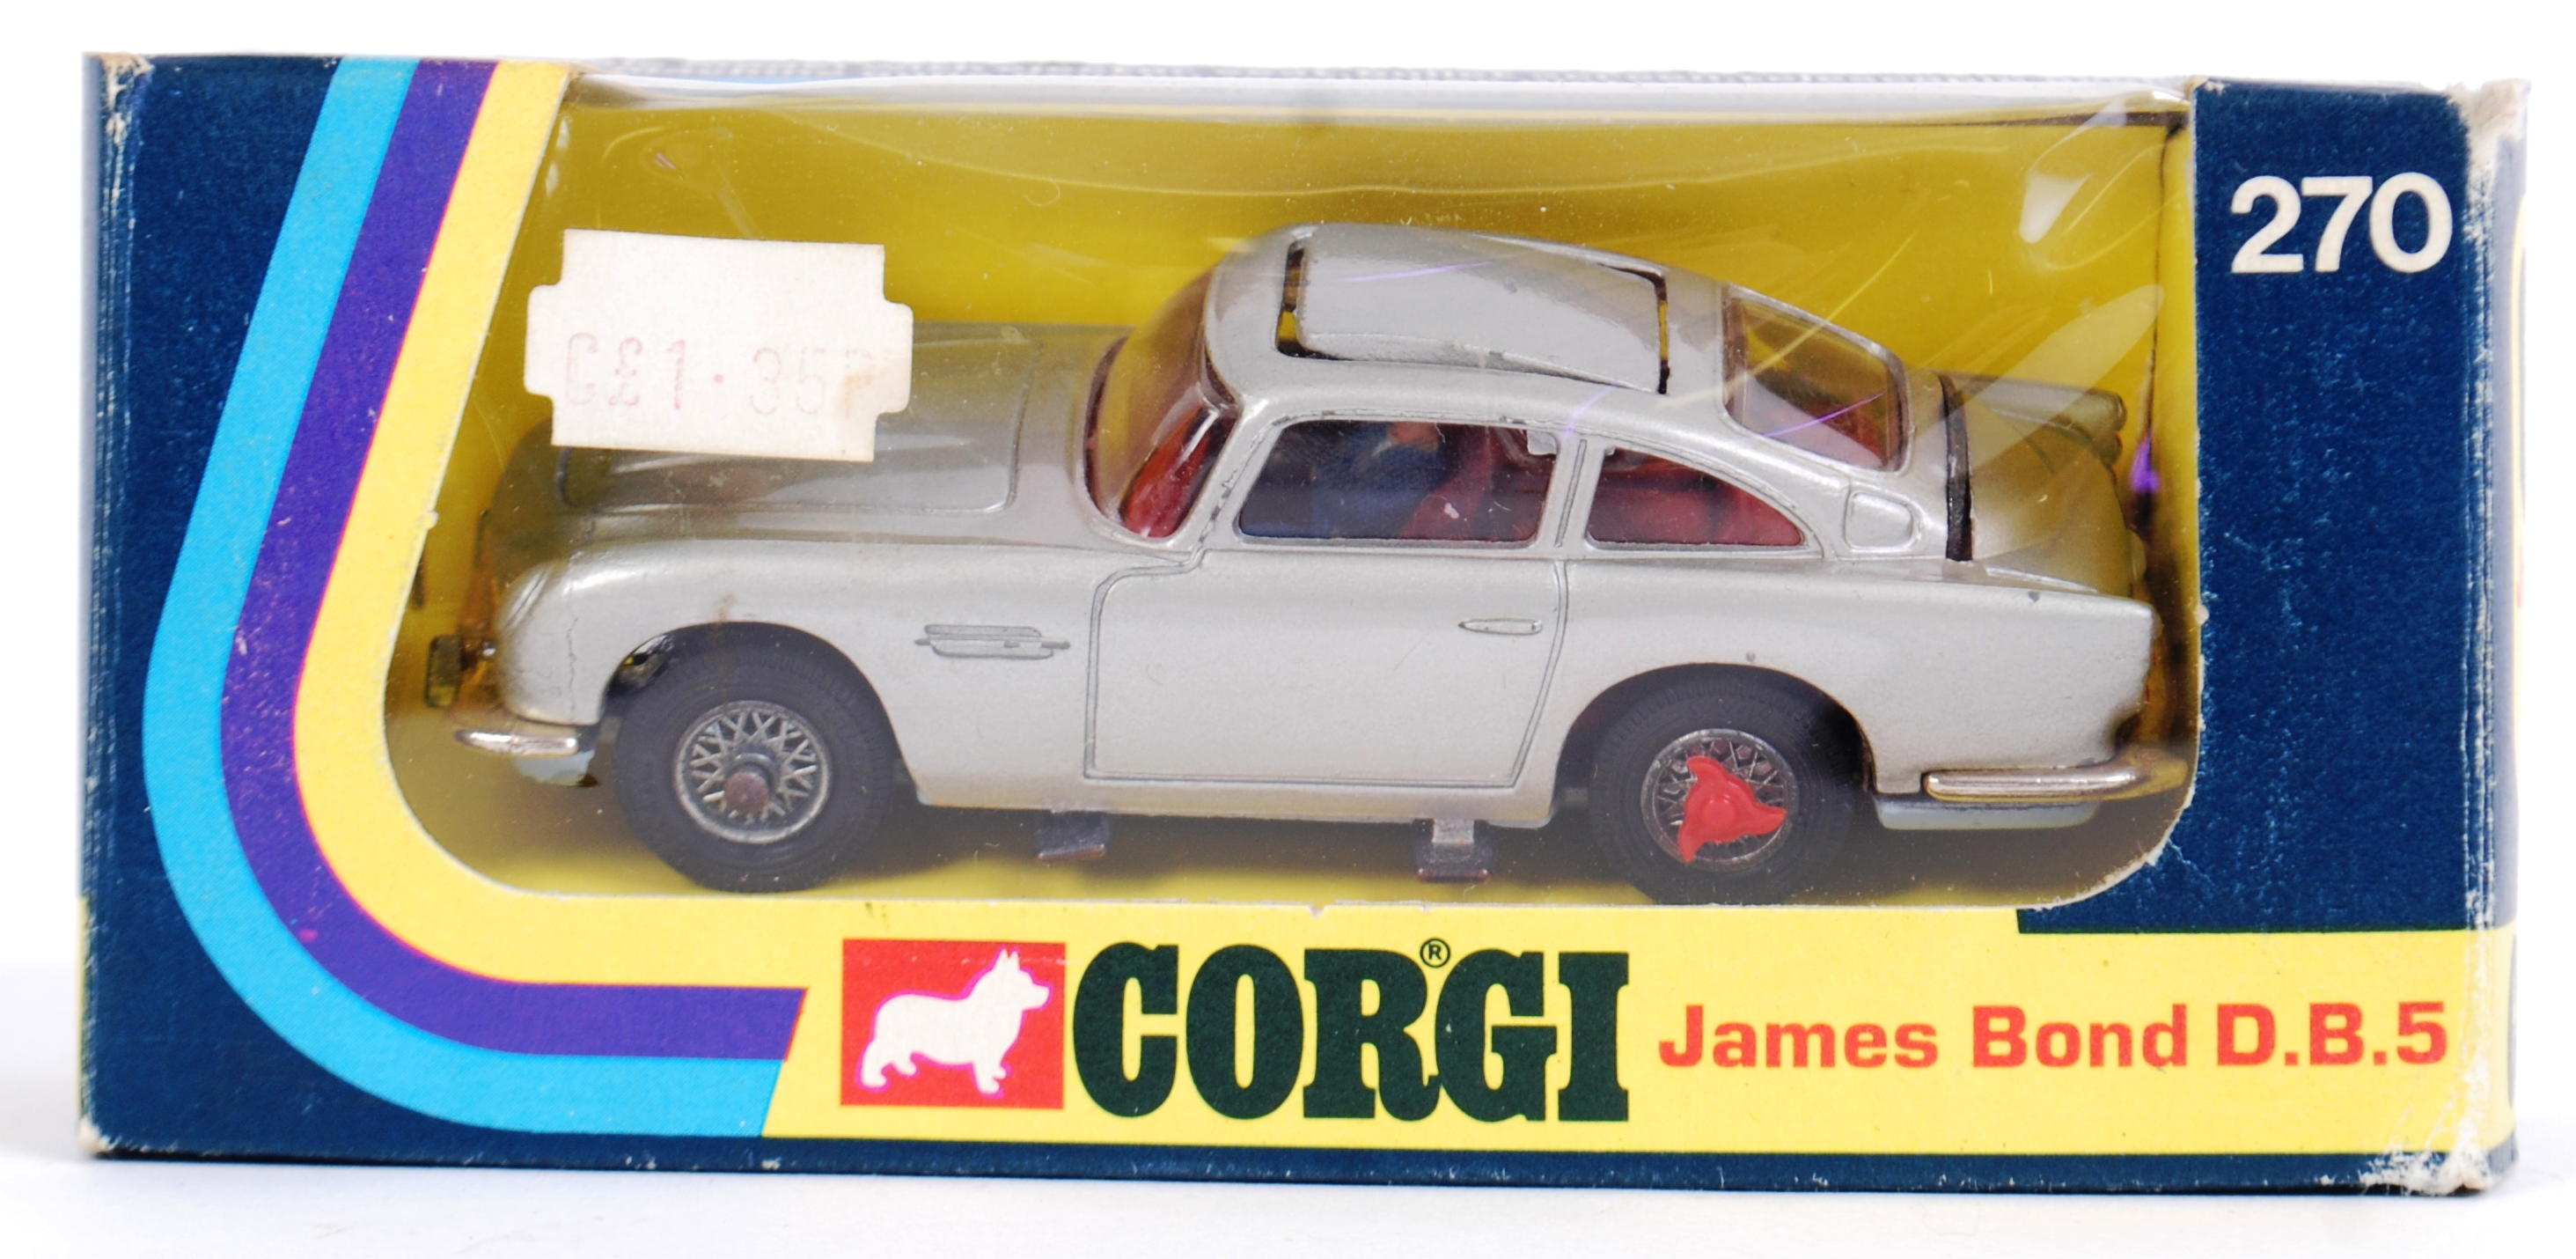 corgi james bond: an original corgi 270 james bond aston martin